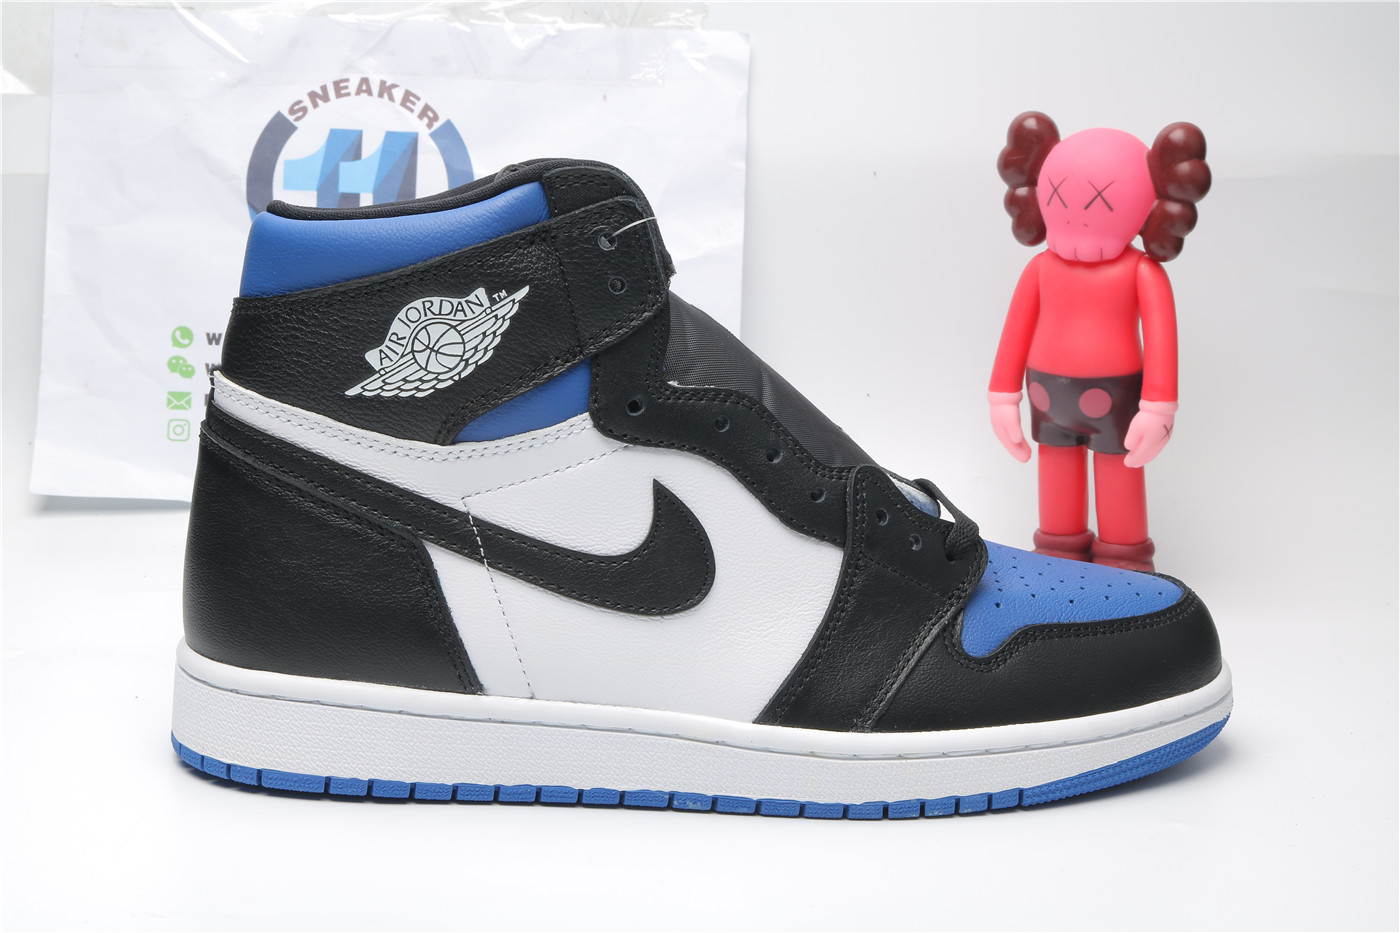 Jordan 1 Retro High OG Game Royal